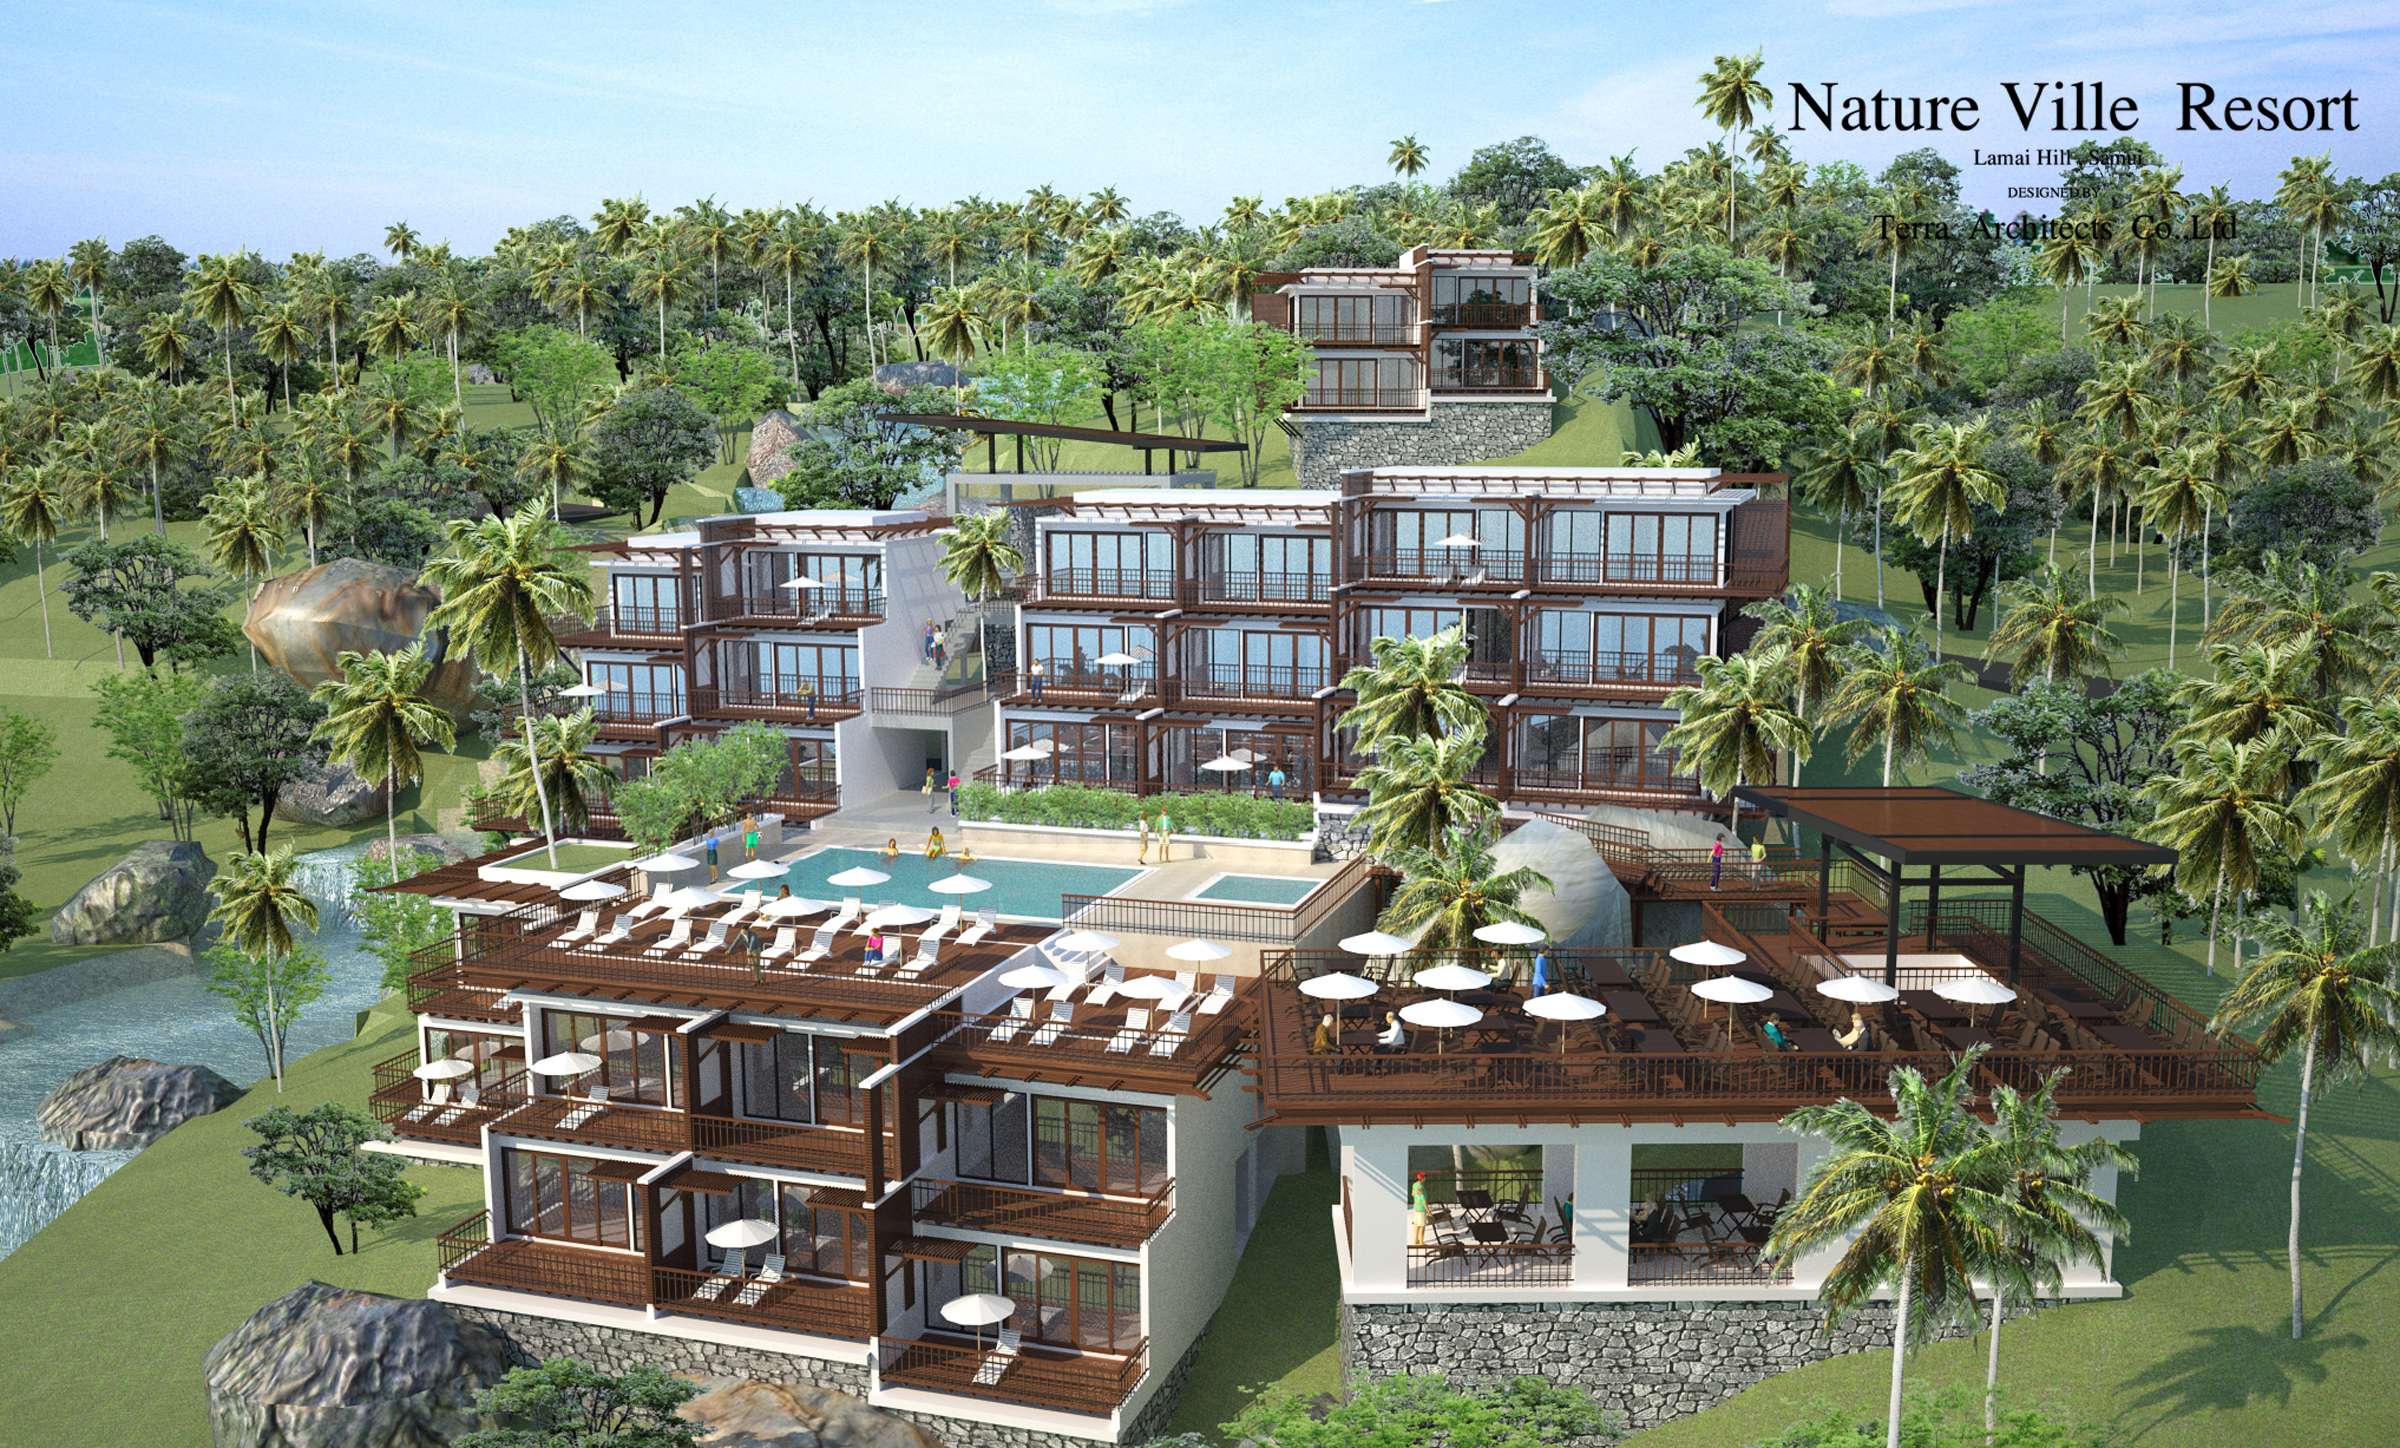 Nature Ville Resort